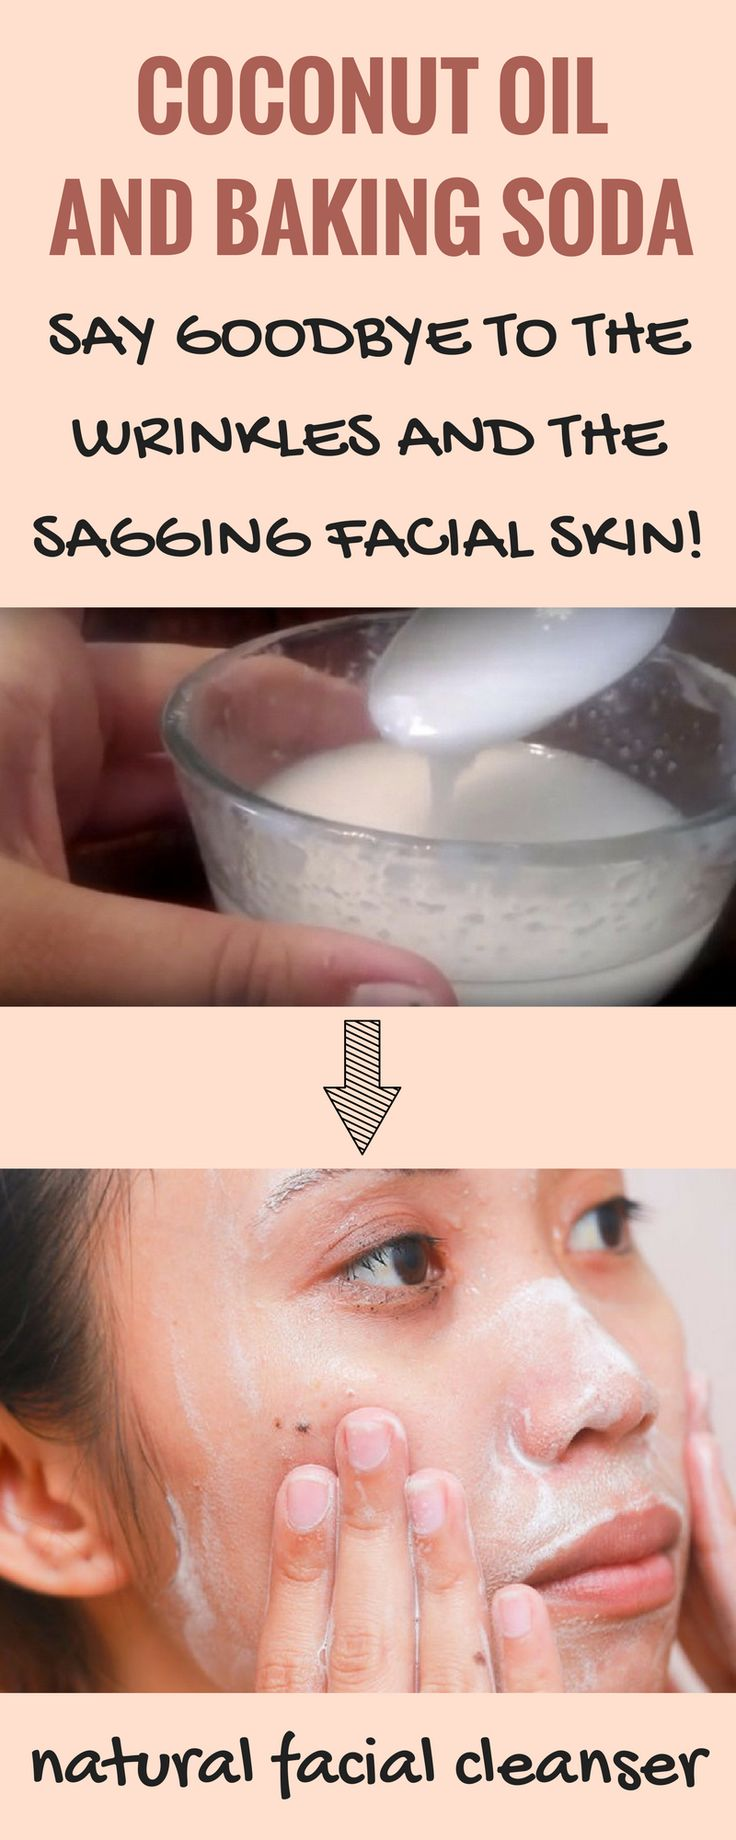 Coconut oil and baking soda, natural facial cleanser!